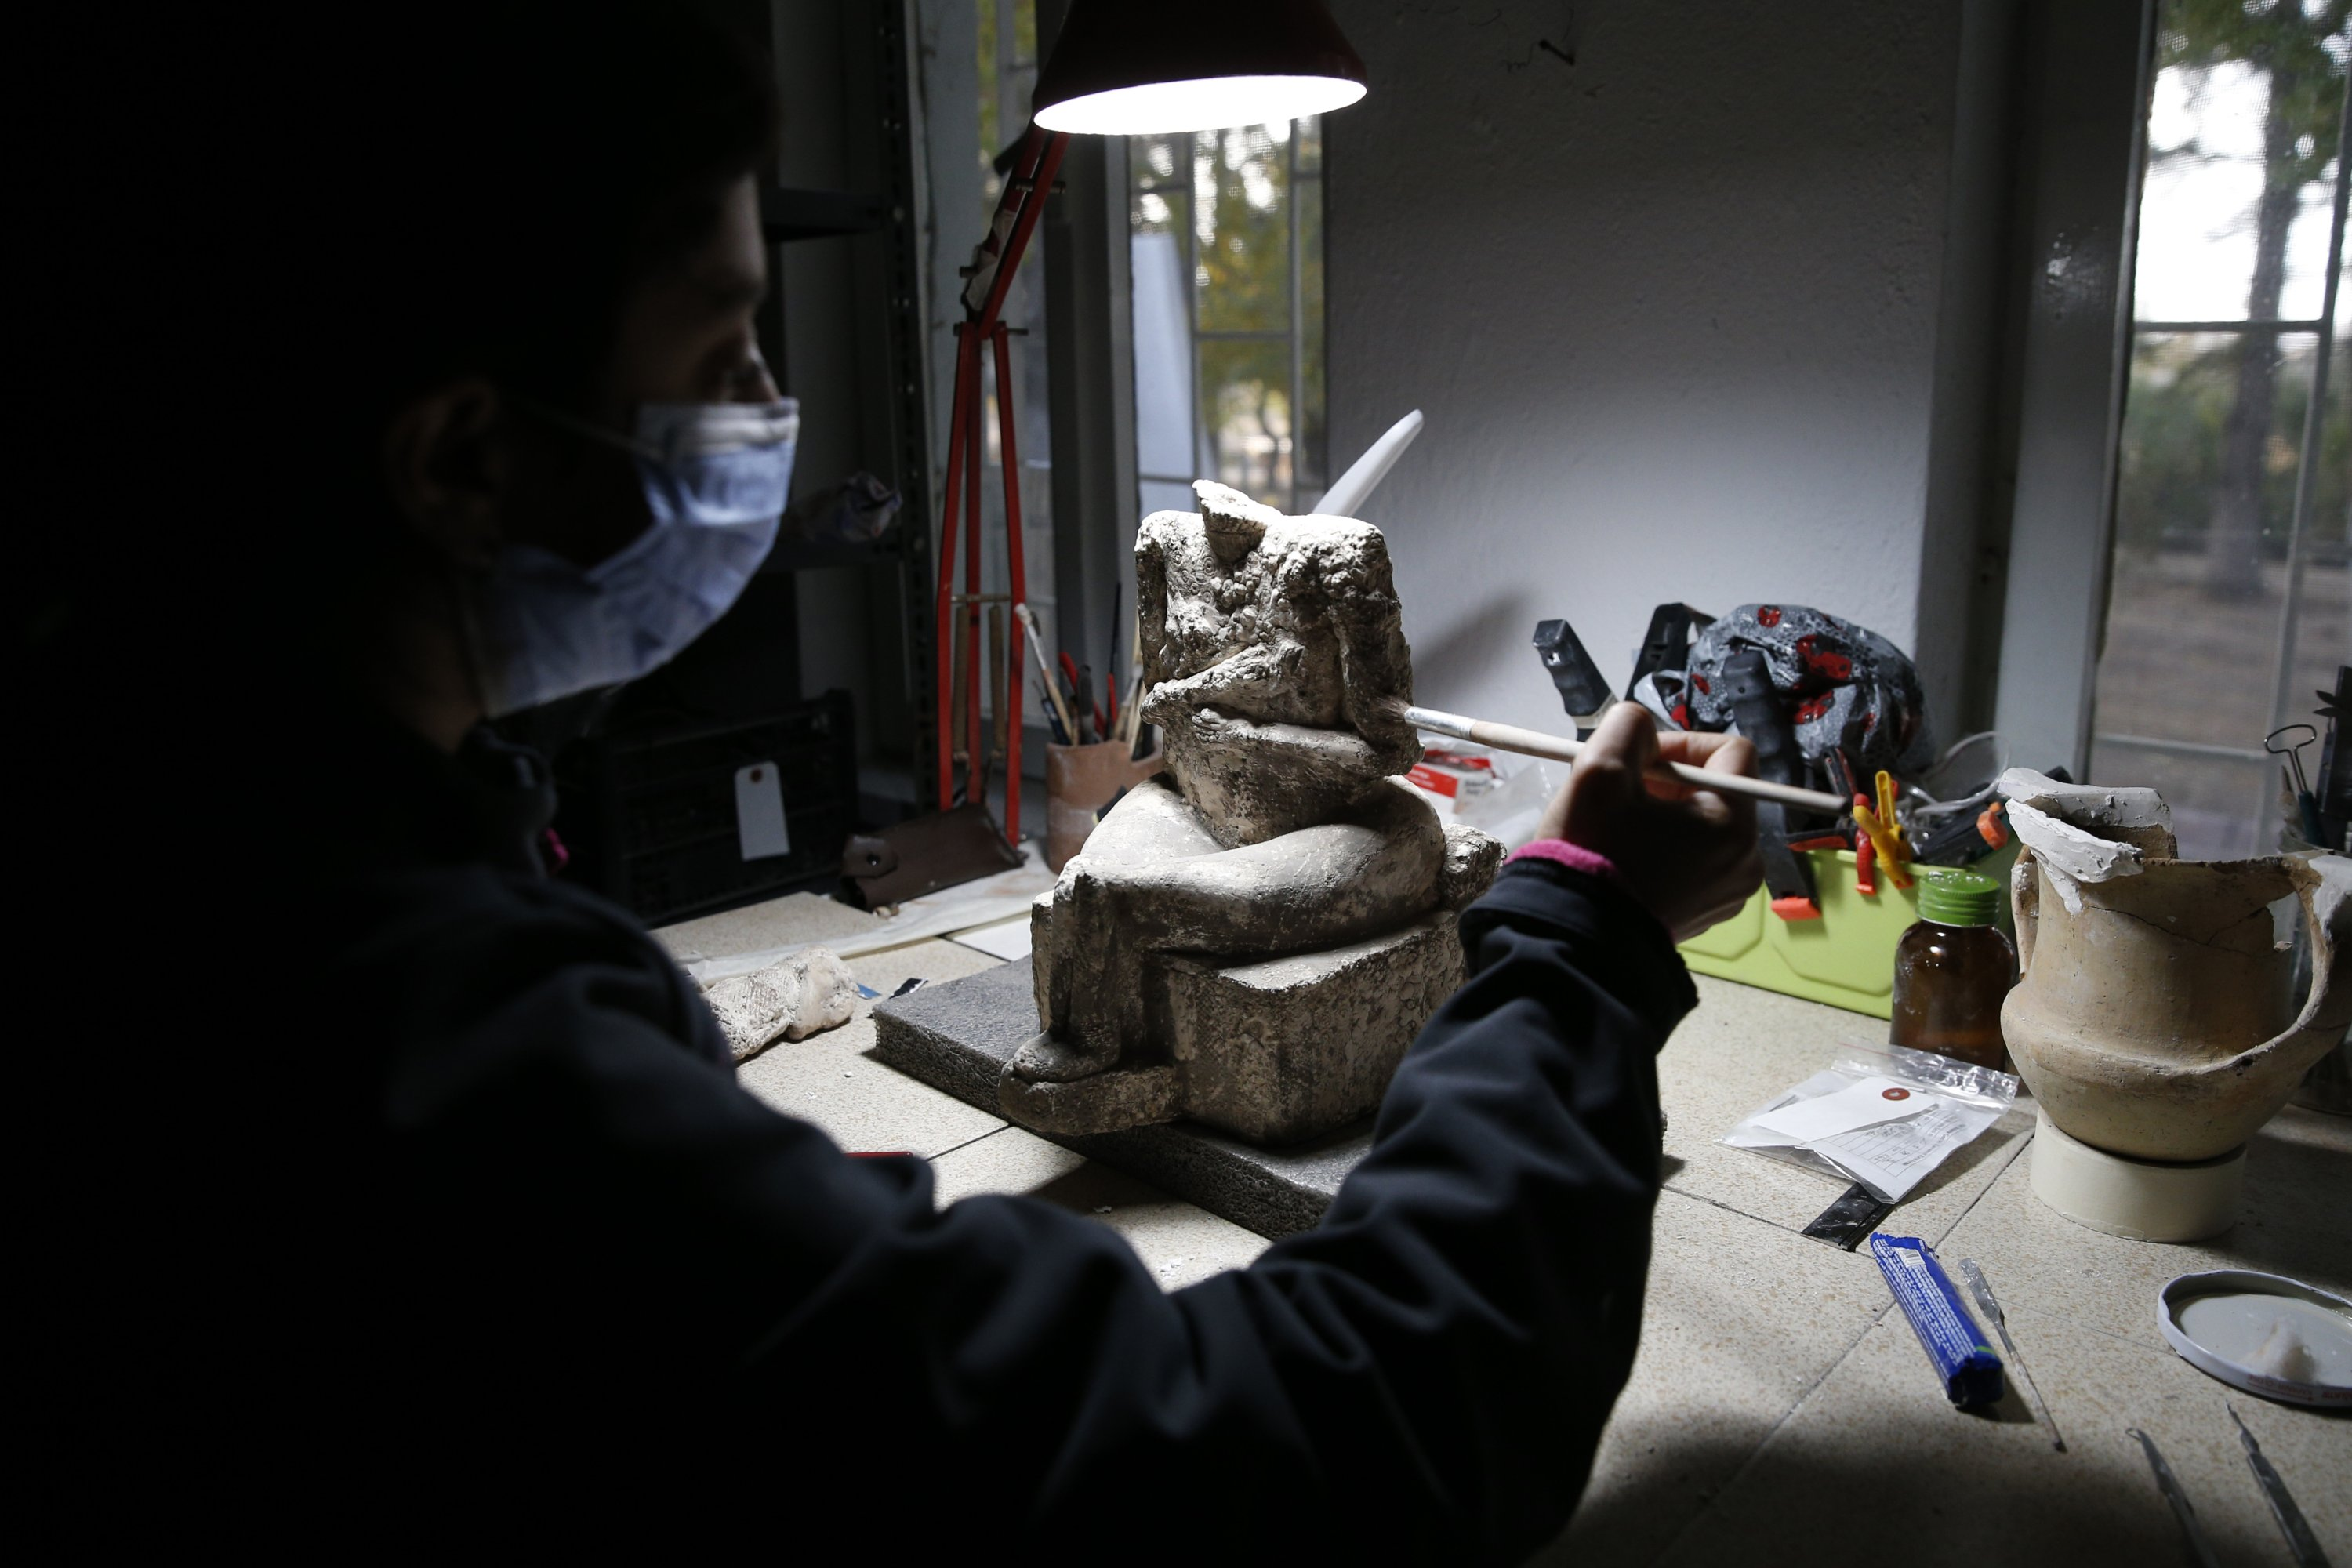 An archaeologist works on the goddess statue found at the Kültepe archaeological site, Kayseri, central Turkey, Nov. 22, 2020. (AA PHOTO)